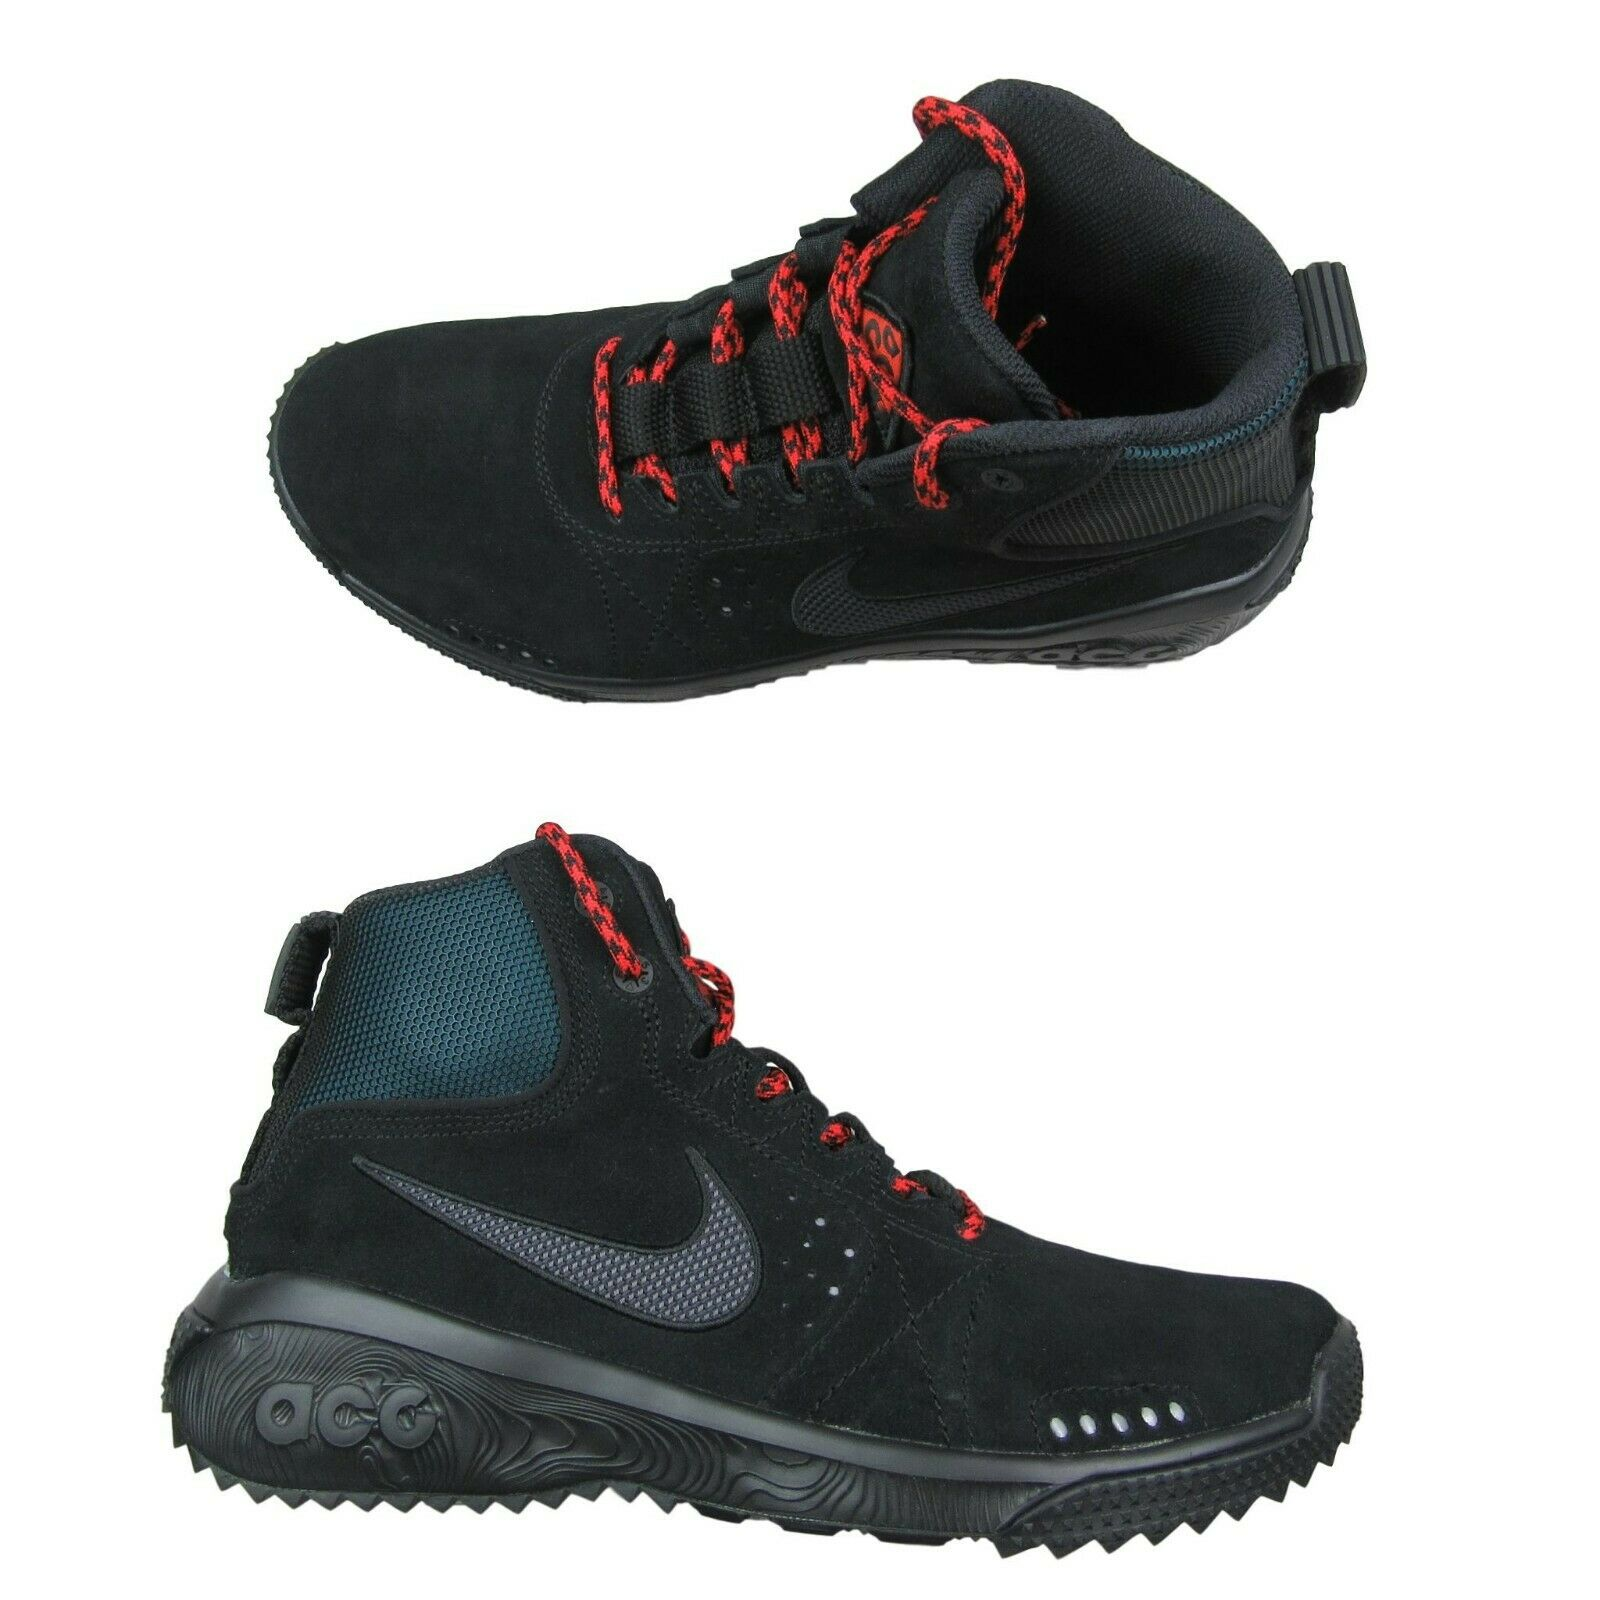 promo code 74414 eb990 ... Size 10 Mens AQ0917-001 New. 🔍. nike-acg-angels-rest-outdoor-hiking- boots-black-